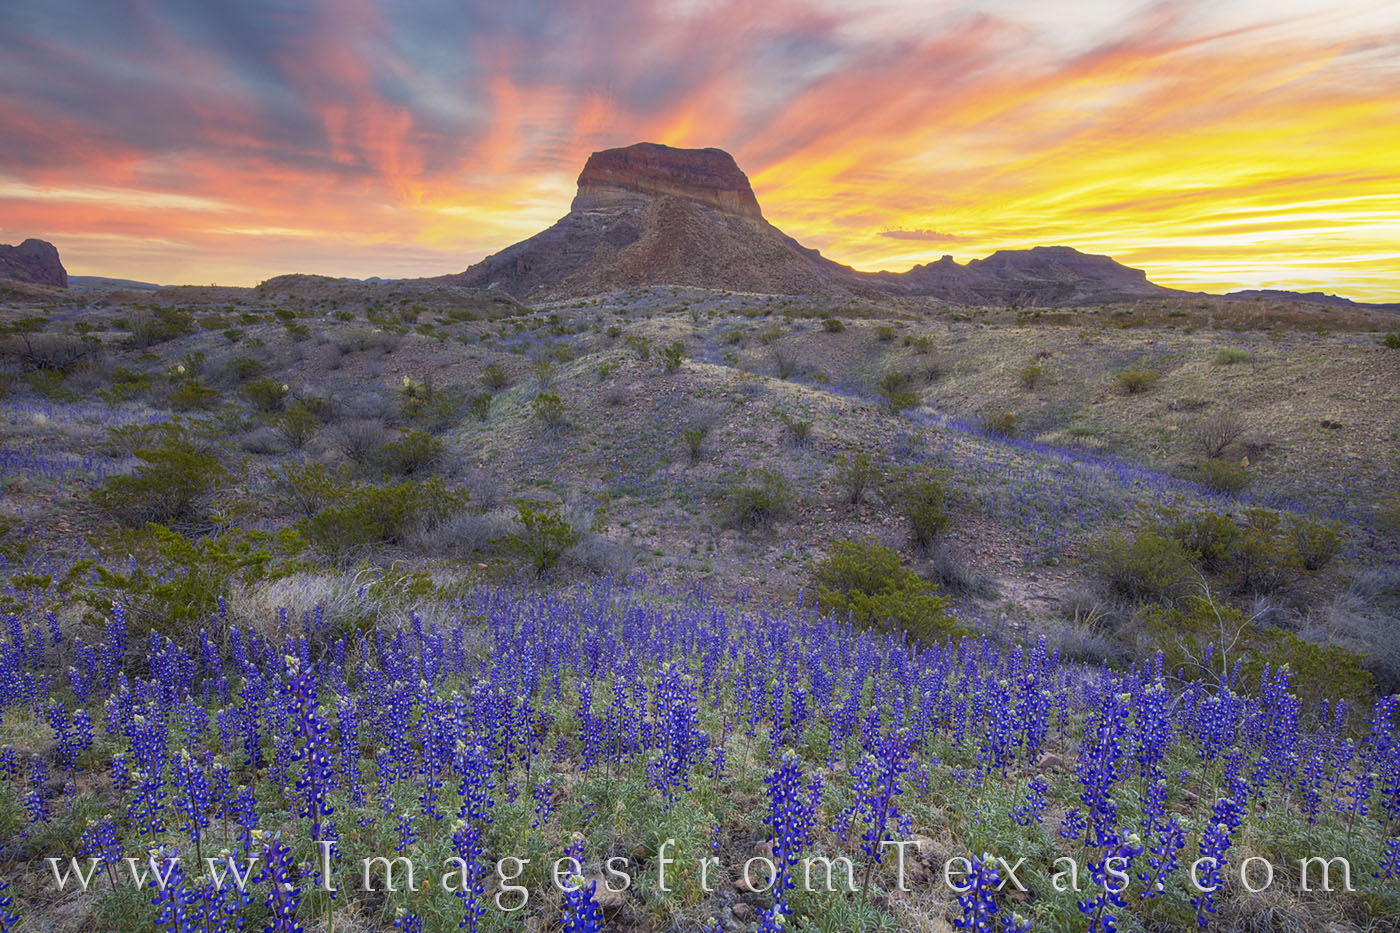 bluebonnets, big bend national park, chihuahuan desert, cerro castellan, sunrise, wildflowers, spring bloom, desert bloom, photo